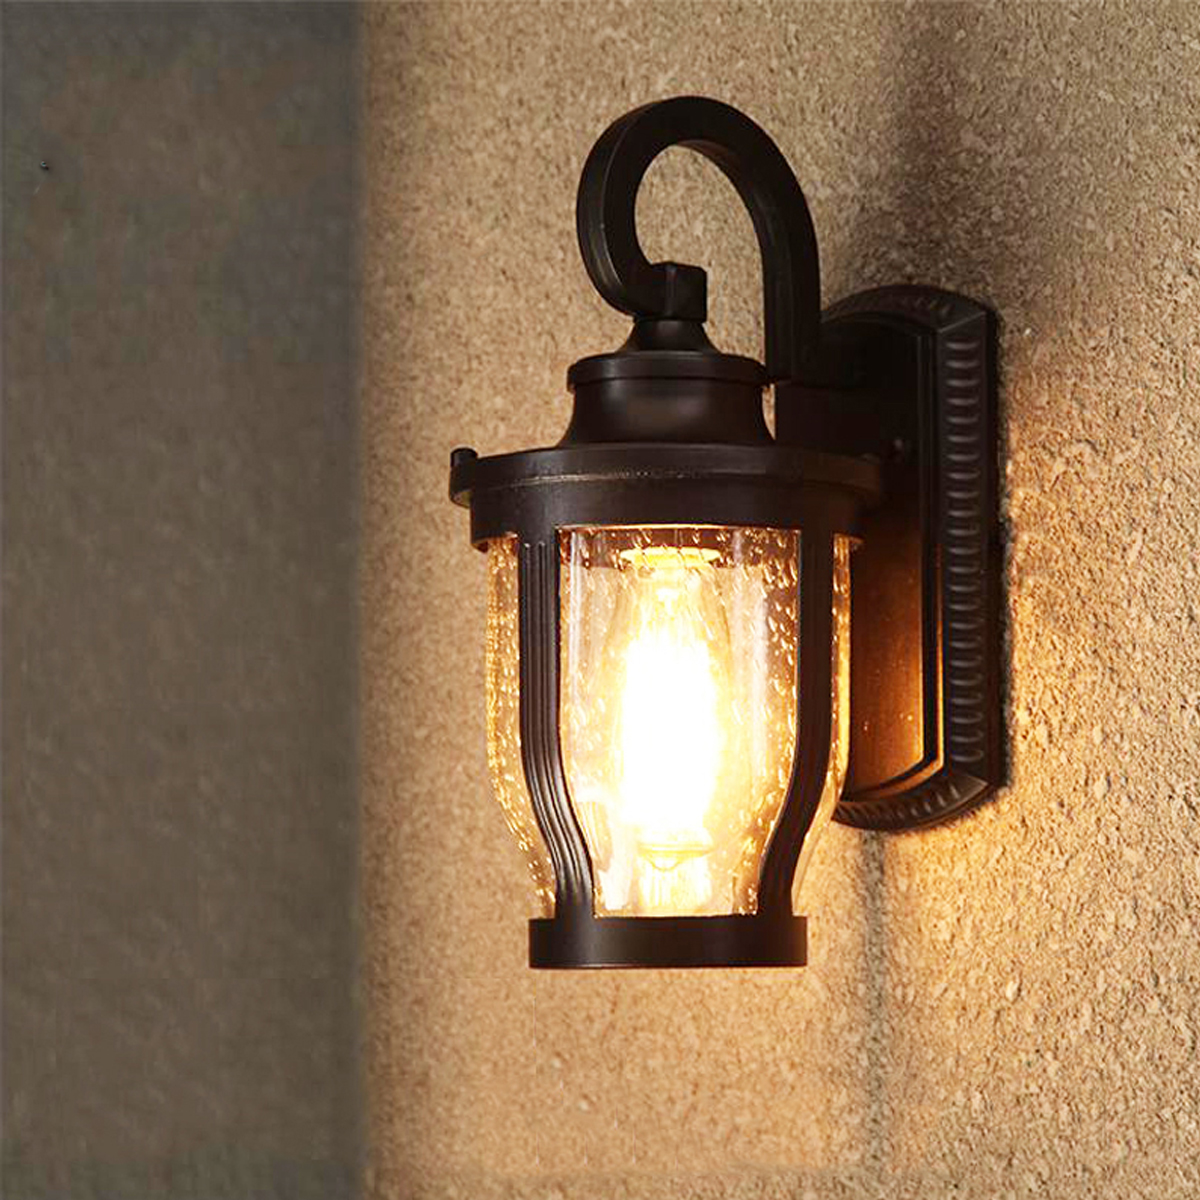 Black/Bronze Vintage Outdoor Wall Lights For Porch Garden Pathway Bar Wall Sconce Aluminum Industrial Lighting LED Lamp